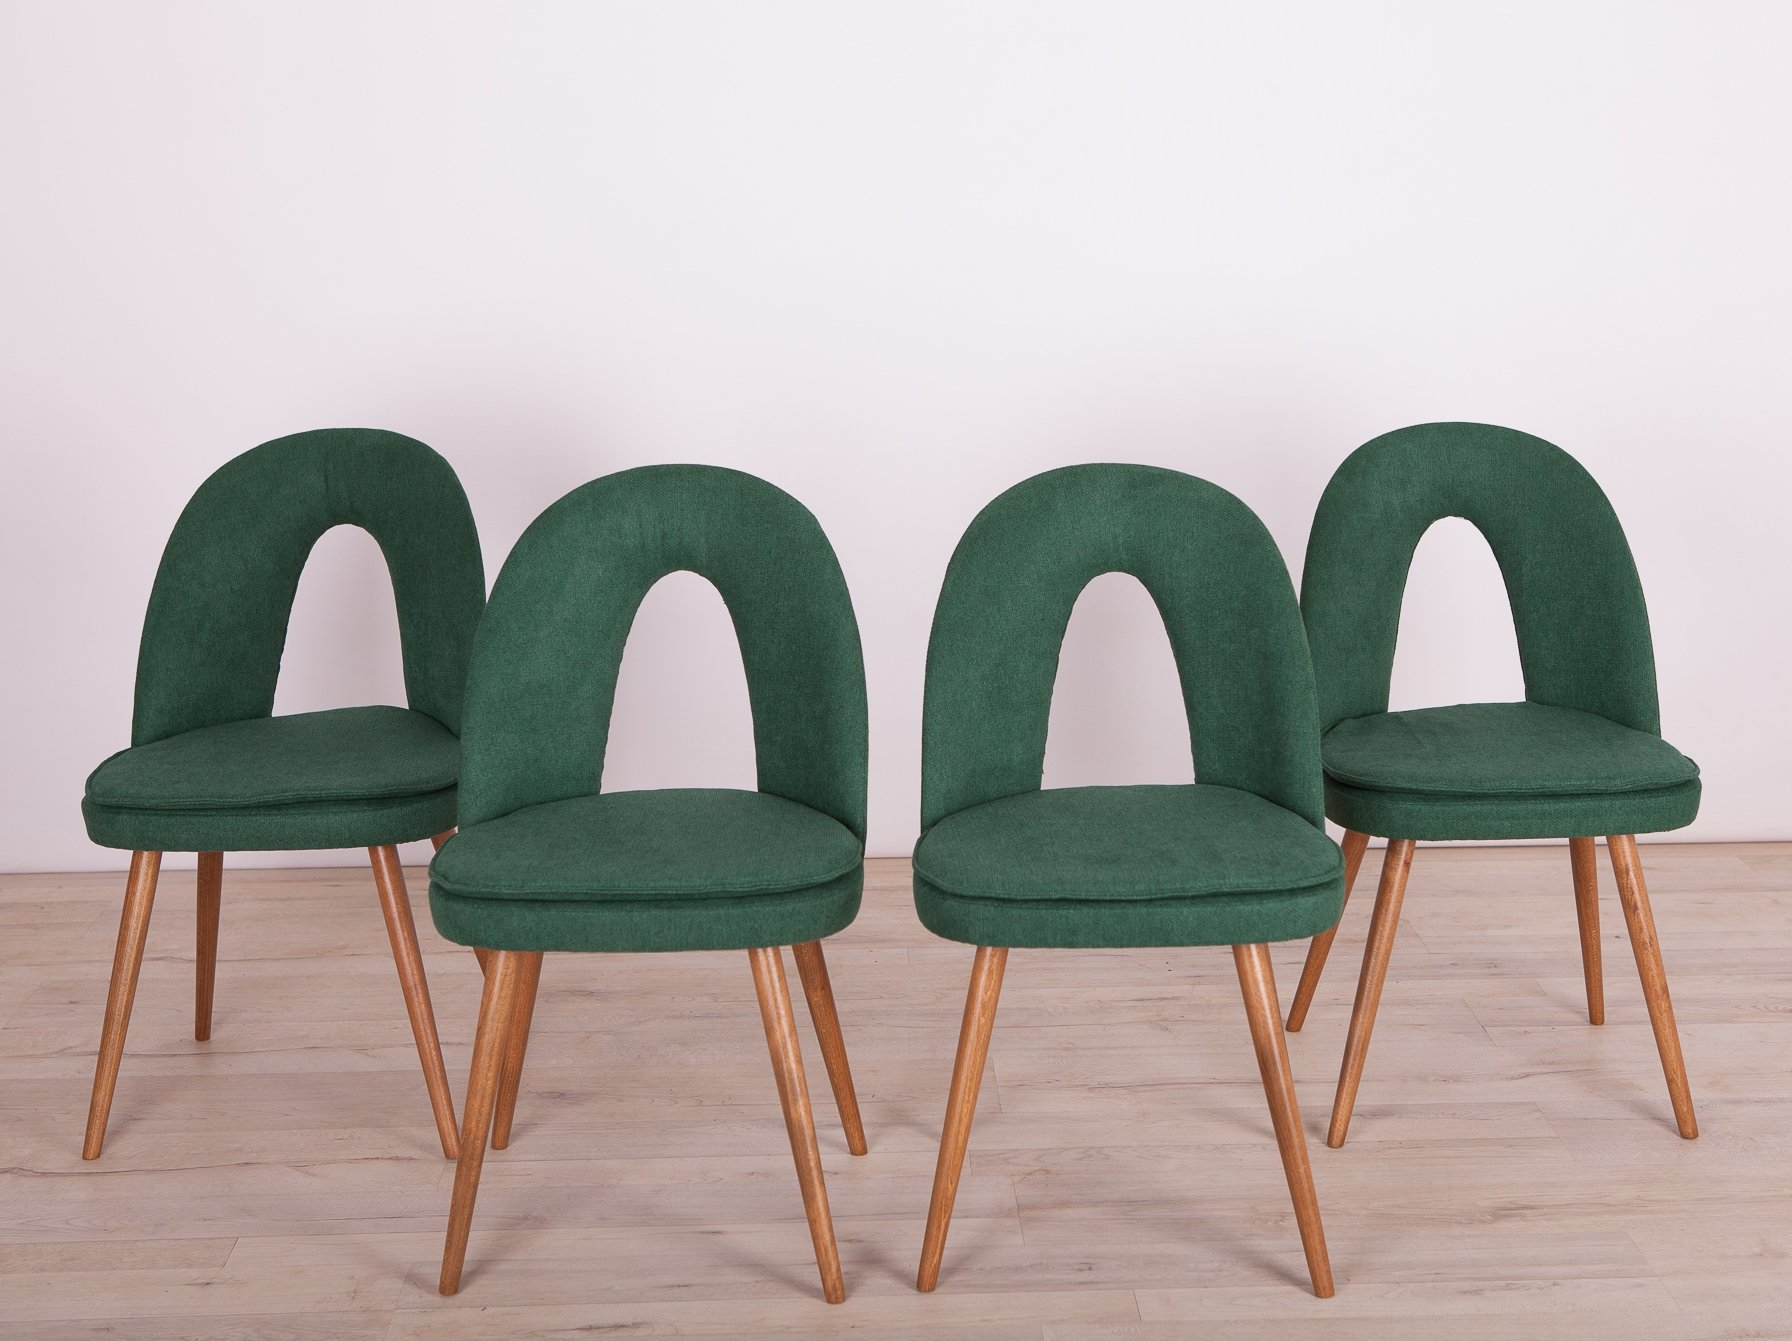 Super Set Of 4 Dining Chairs By Antonin Suman For Tatra 1960S Gmtry Best Dining Table And Chair Ideas Images Gmtryco